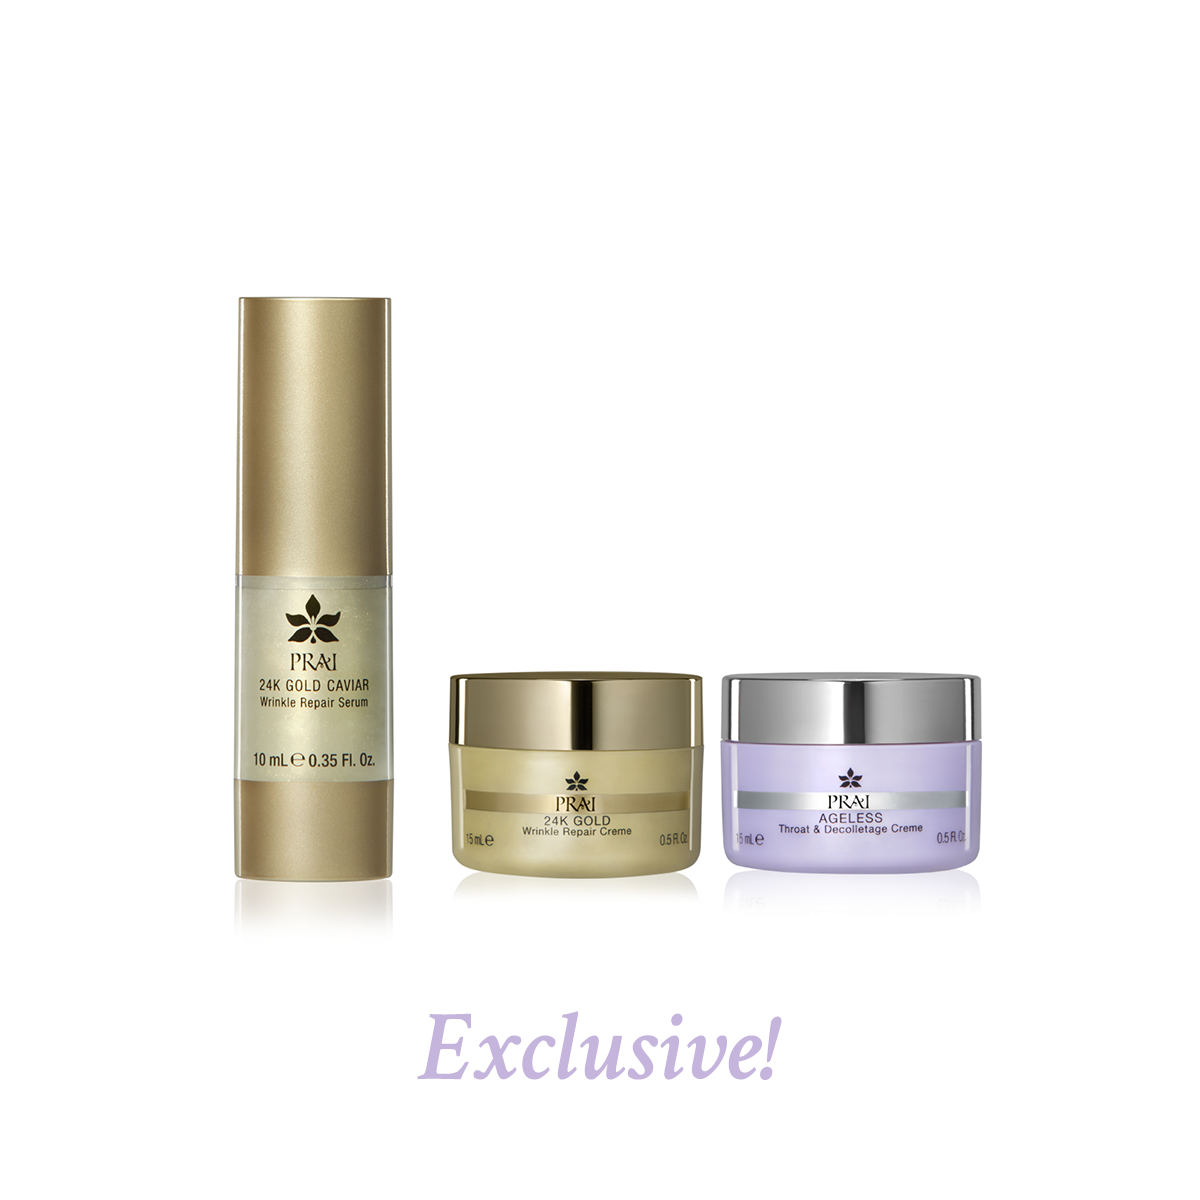 Best of PRAI Beauty Anti Aging Set - Daytime